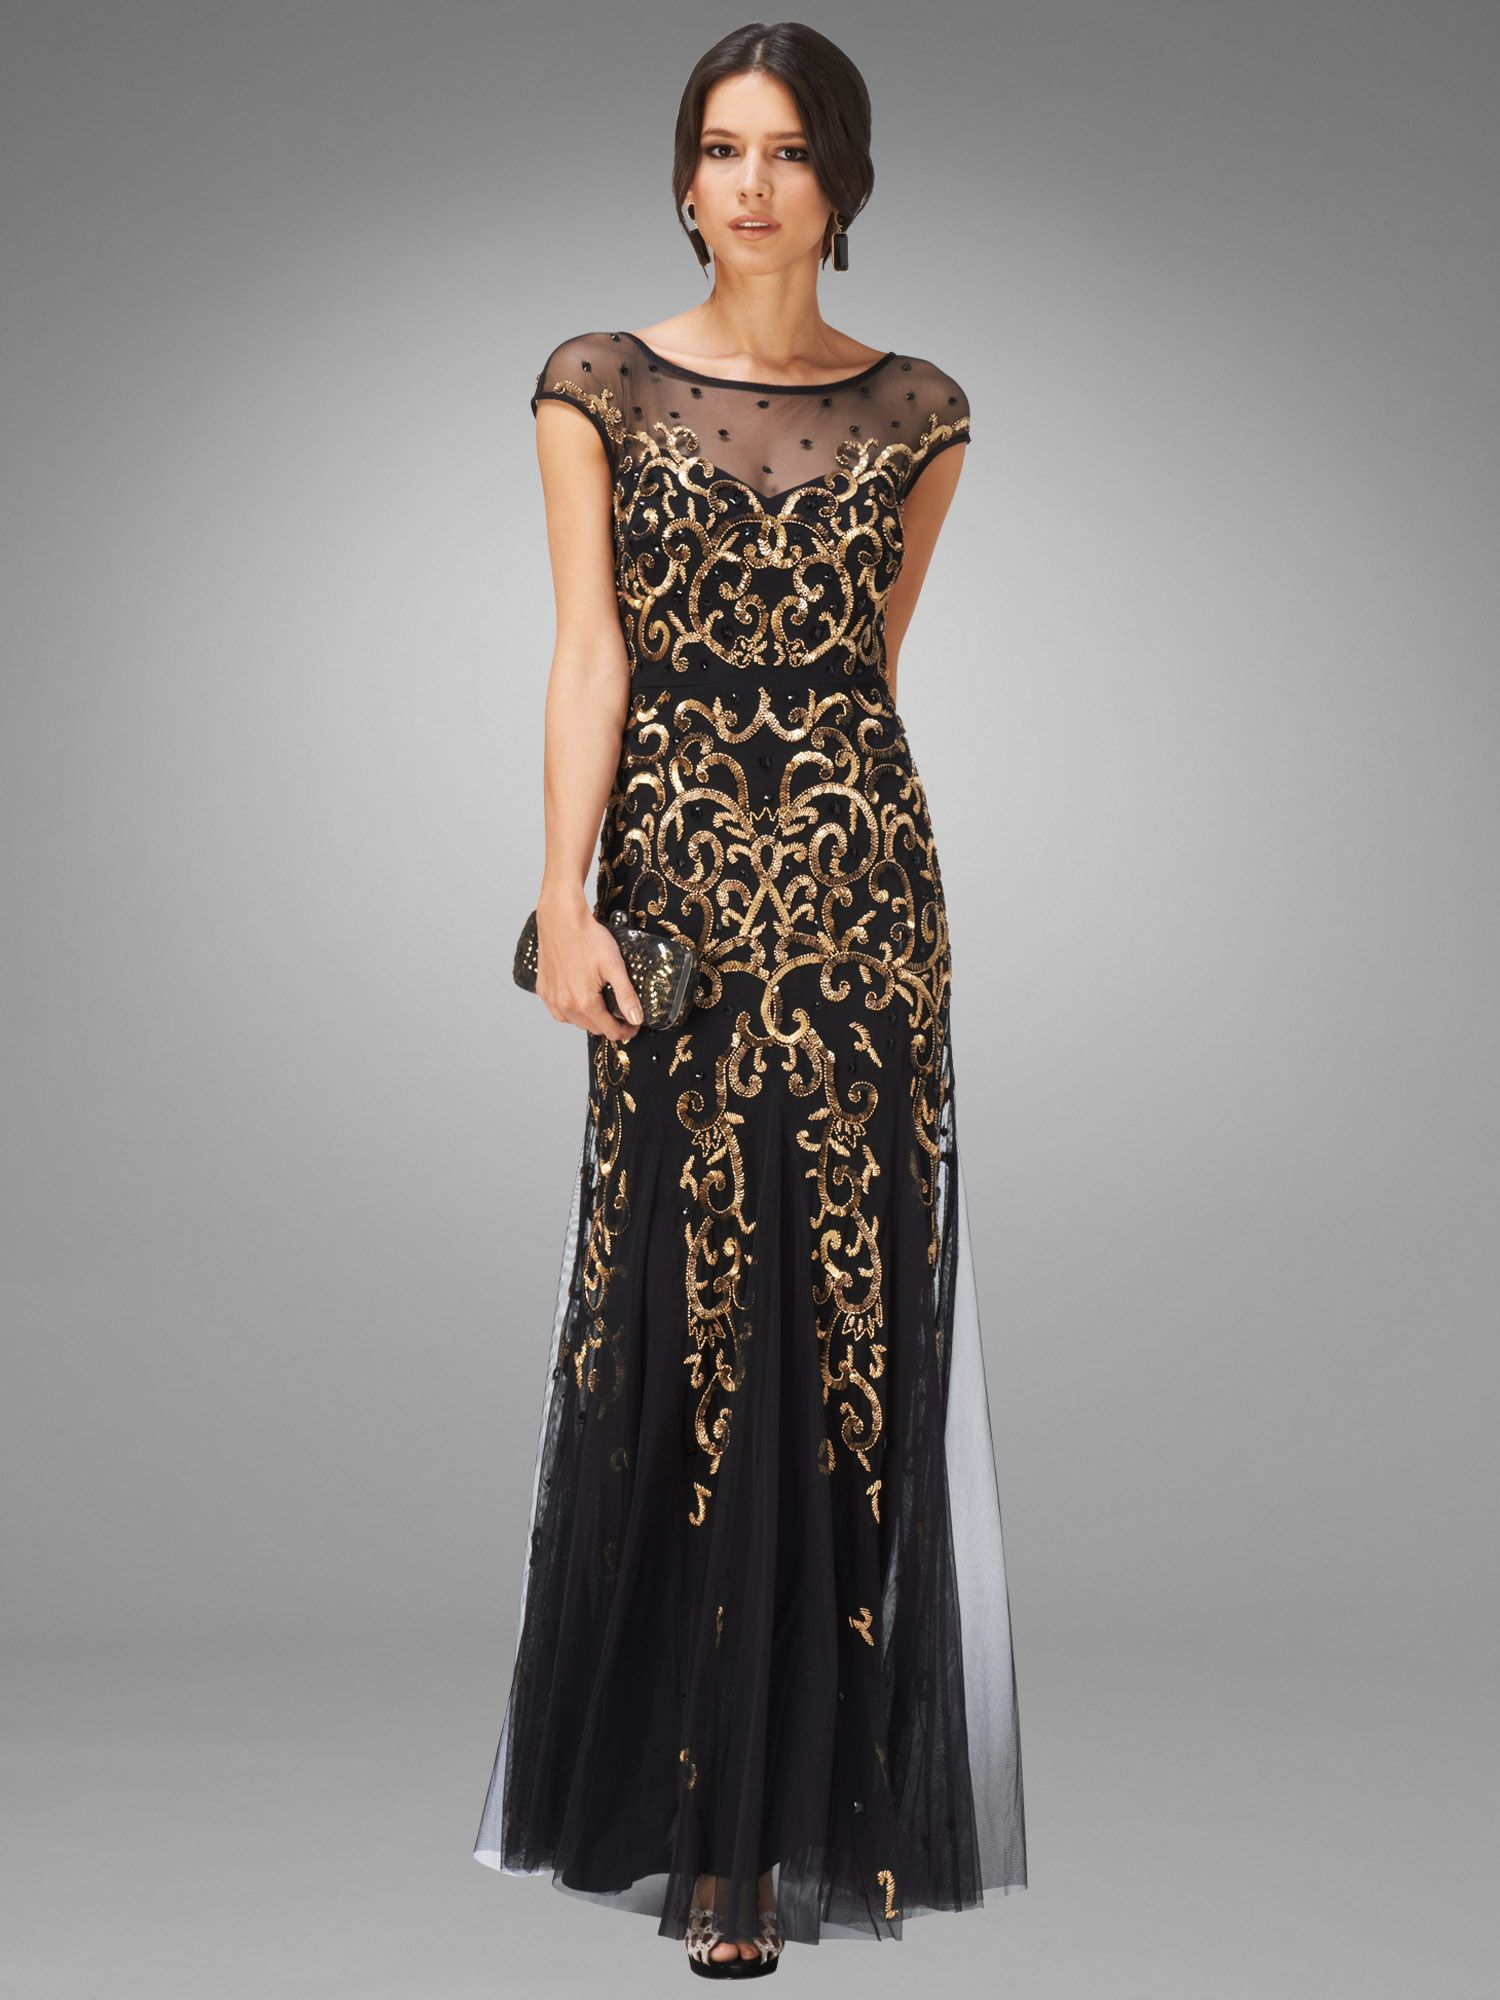 Nina embellished full length dress